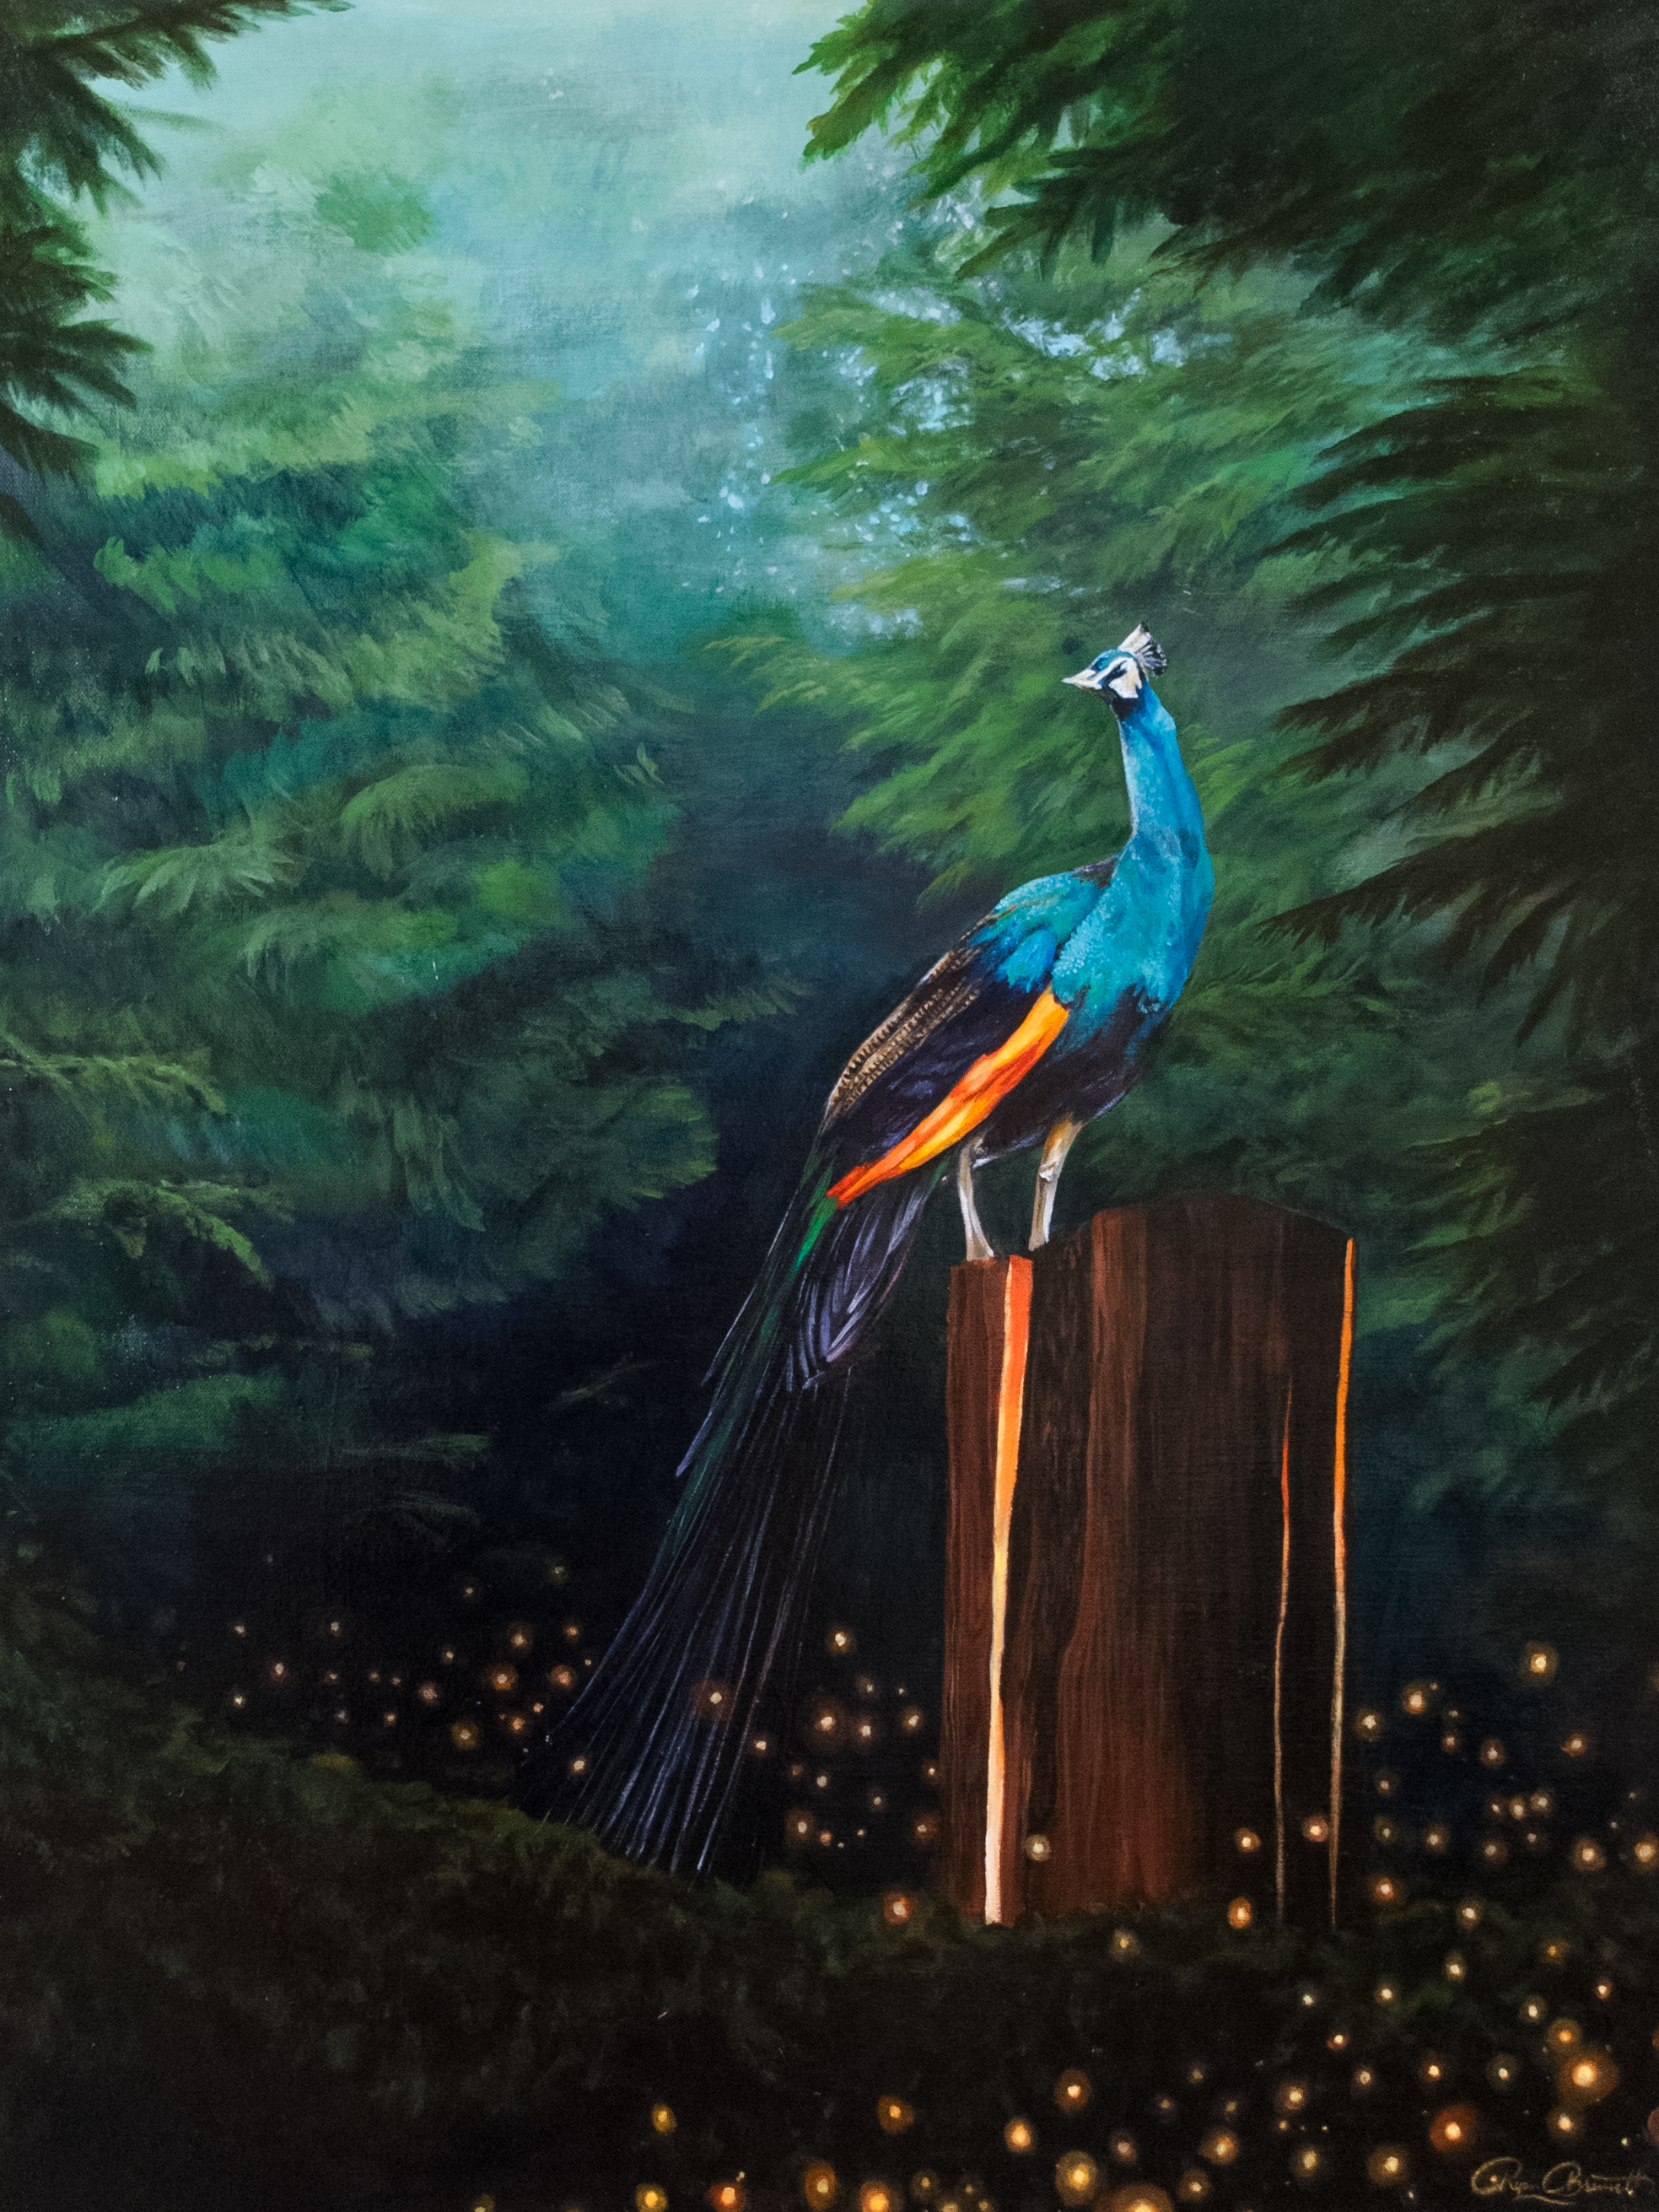 peacock standing on top of a stump inlaid with glowing lights surrounded by trees and forest scenery with a stream of fireflies drifting throughout